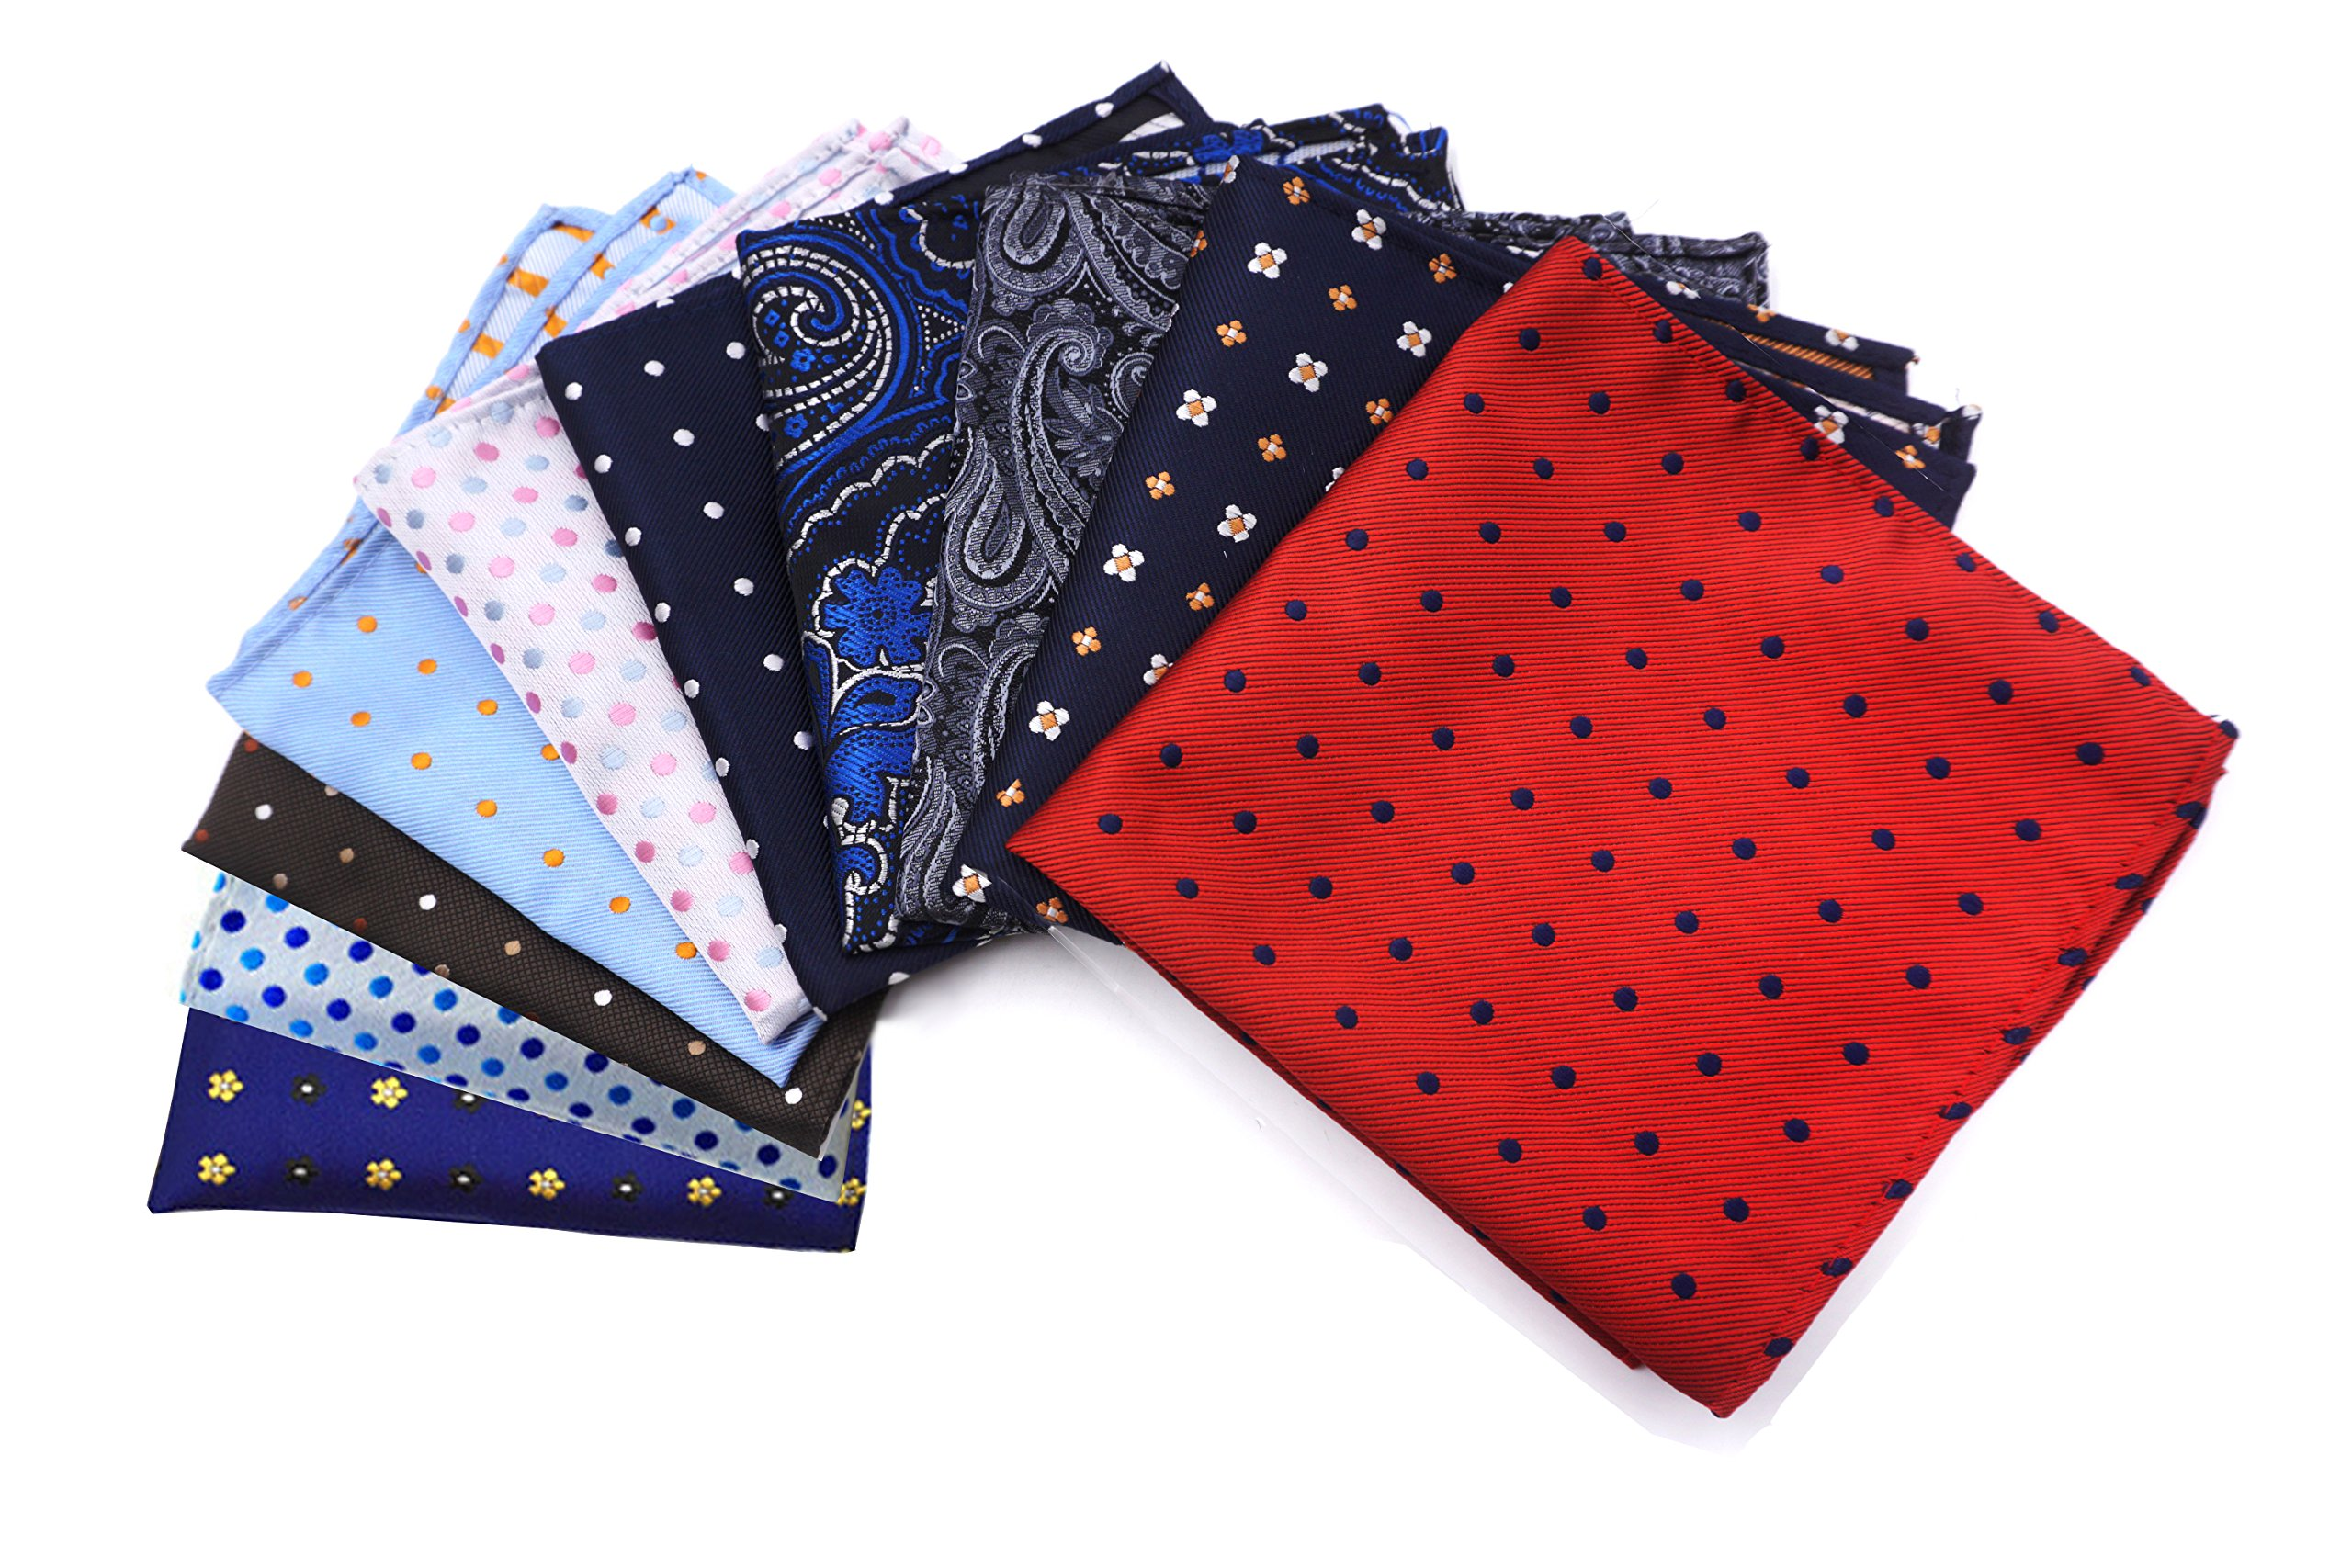 AVANTMEN 10 PCS Men's Pocket Squares Assorted Woven Handkerchief Hanky with Gift Box (10 x 10'', S4)